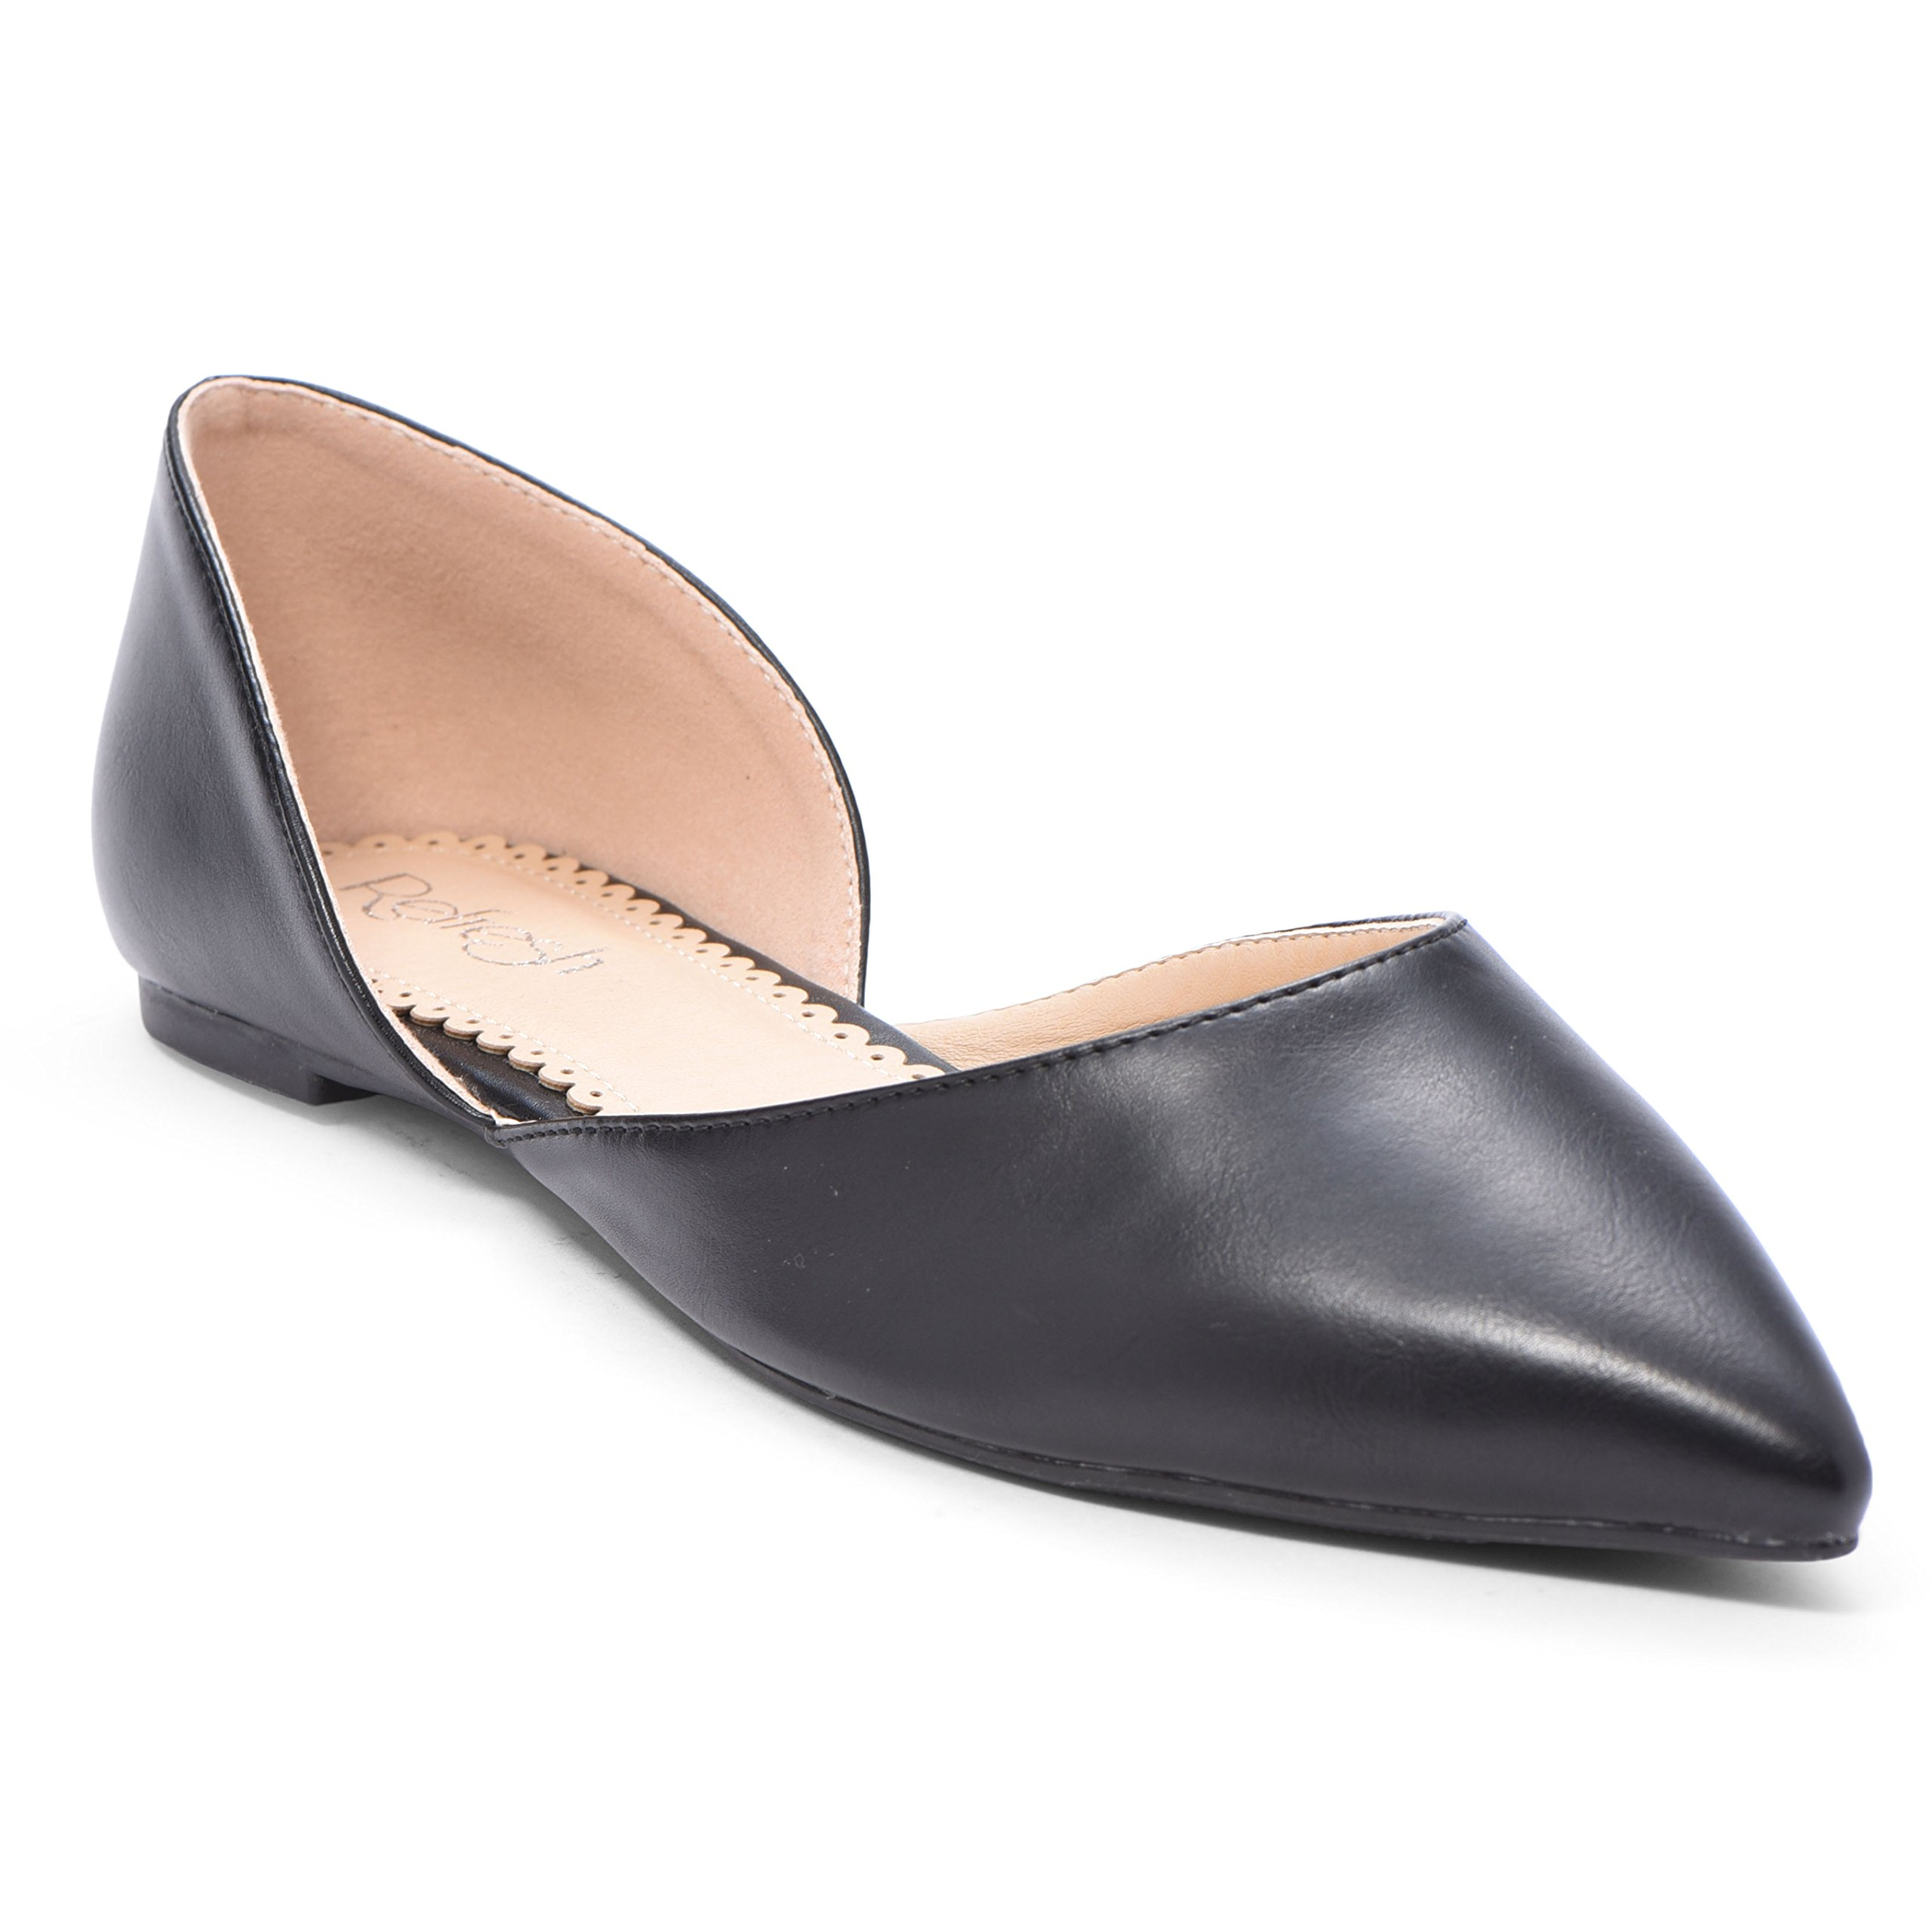 Women's Ballet Flat D'Orsay Comfort Light Pointed Toe Slip On Casual Shoes Black PU 10